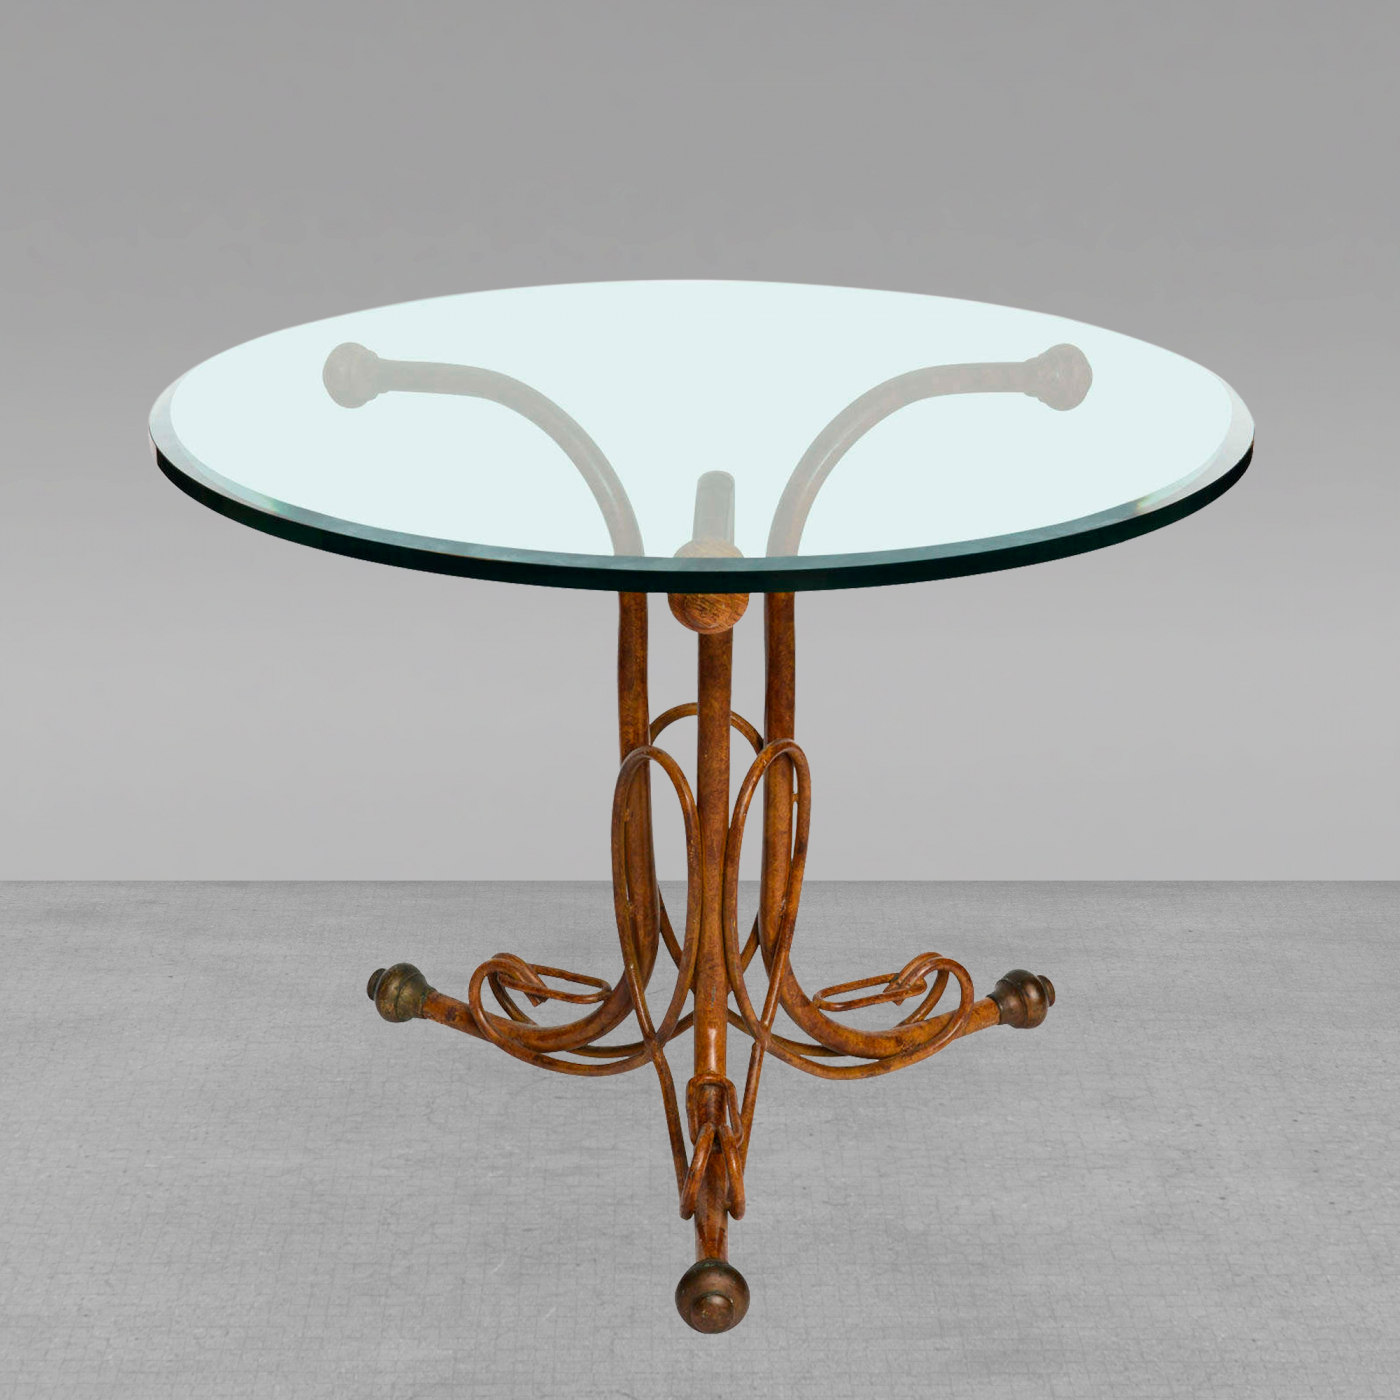 Preferred Faux Bois Coffee Tables Within An Unusual Faux Bois Painted Metal, Glass Top Table Marked Thonet (View 15 of 20)